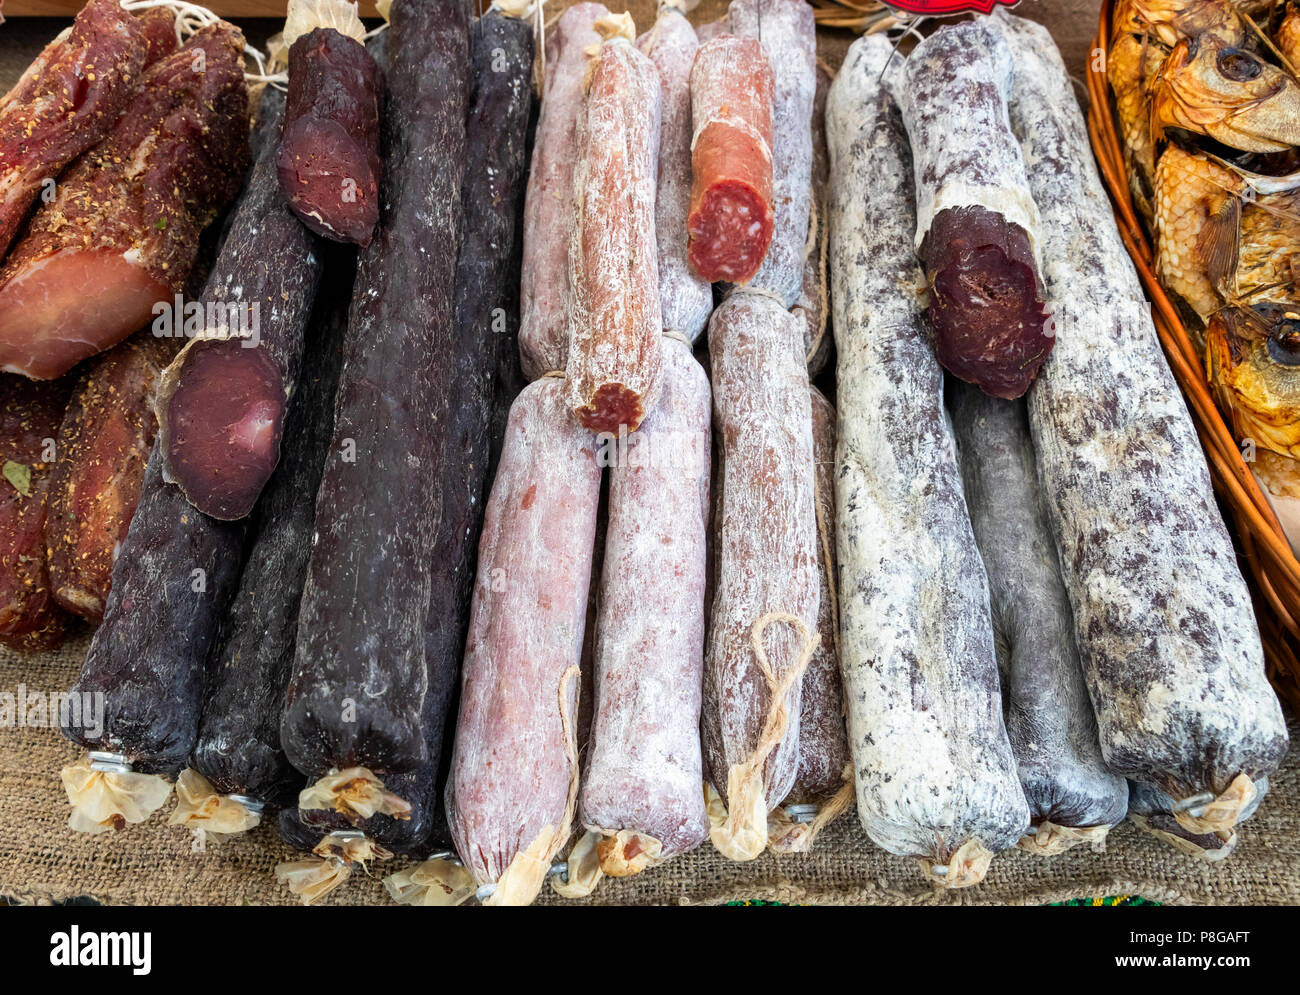 Assorted smoked sausages - Stock Image